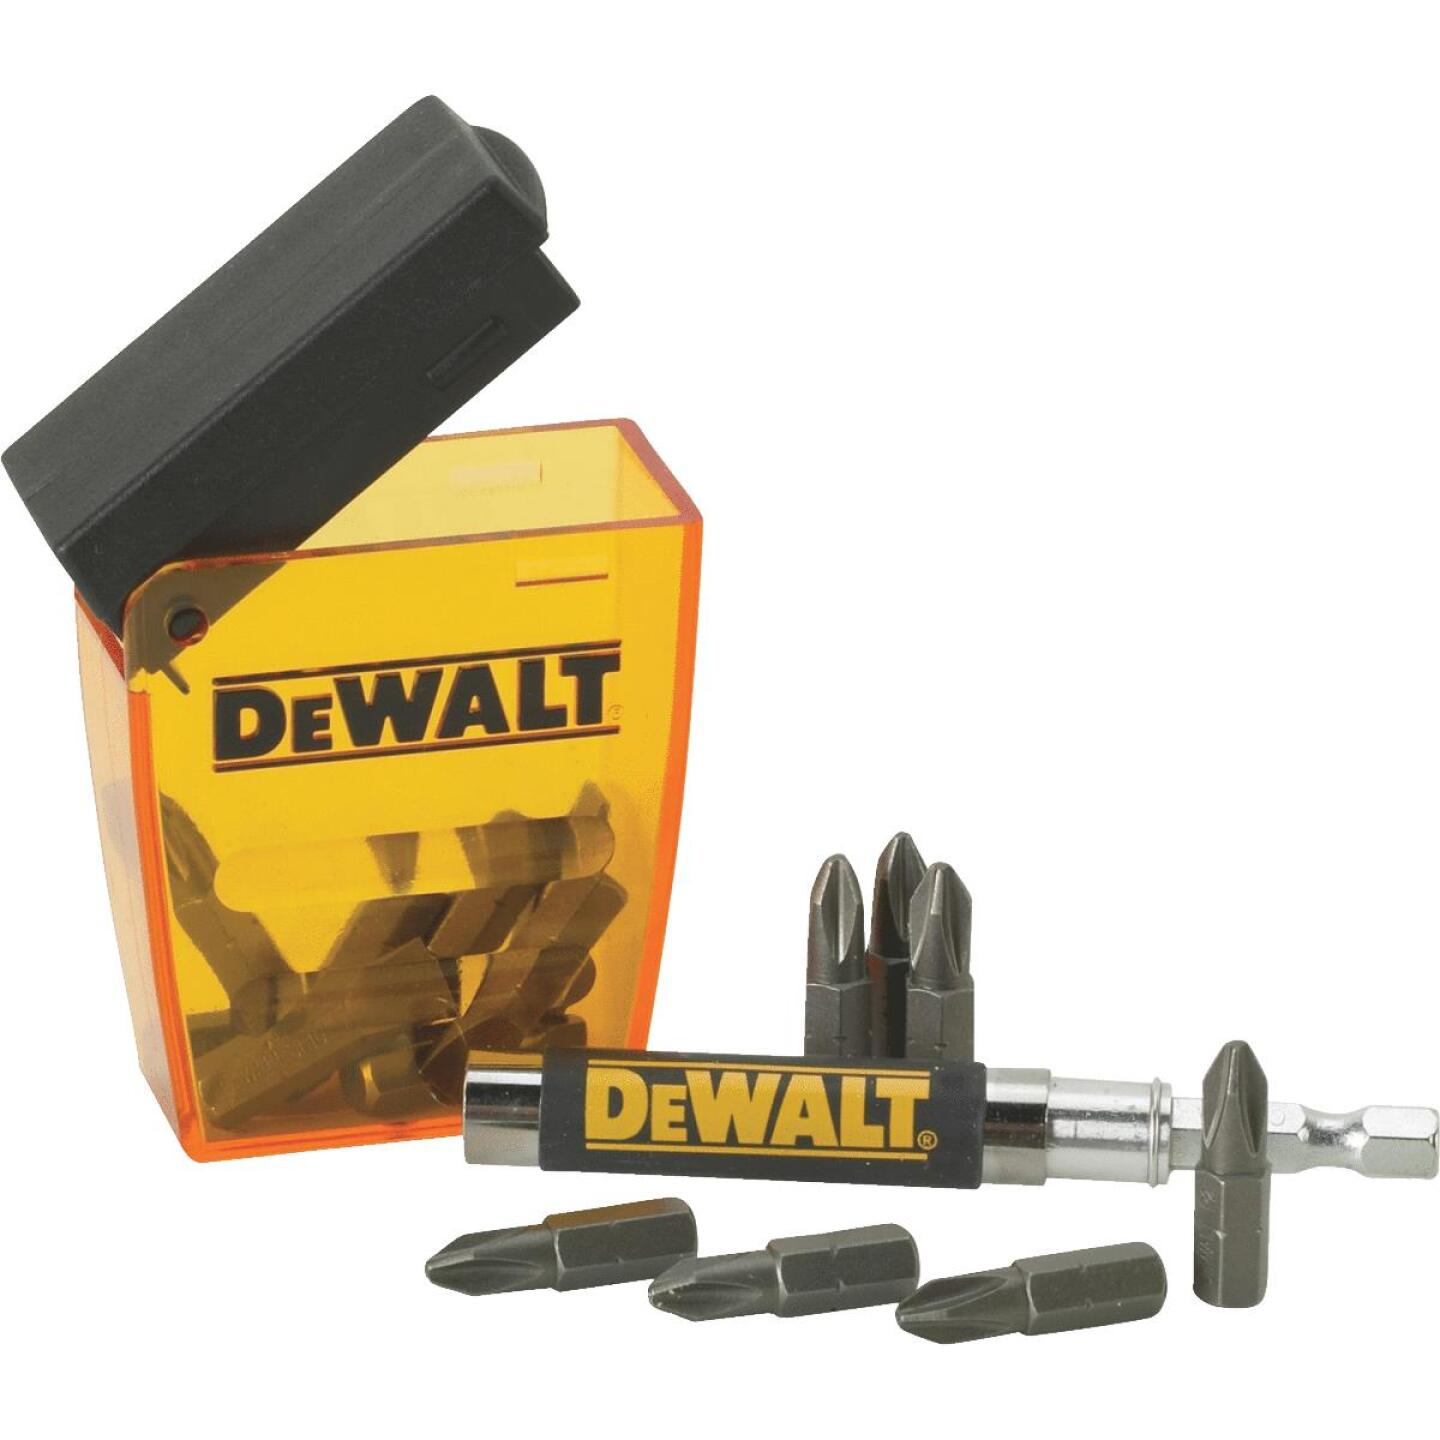 DeWalt 16-Piece Magnetic Drive Guide Screwdriver Bit Set Image 1